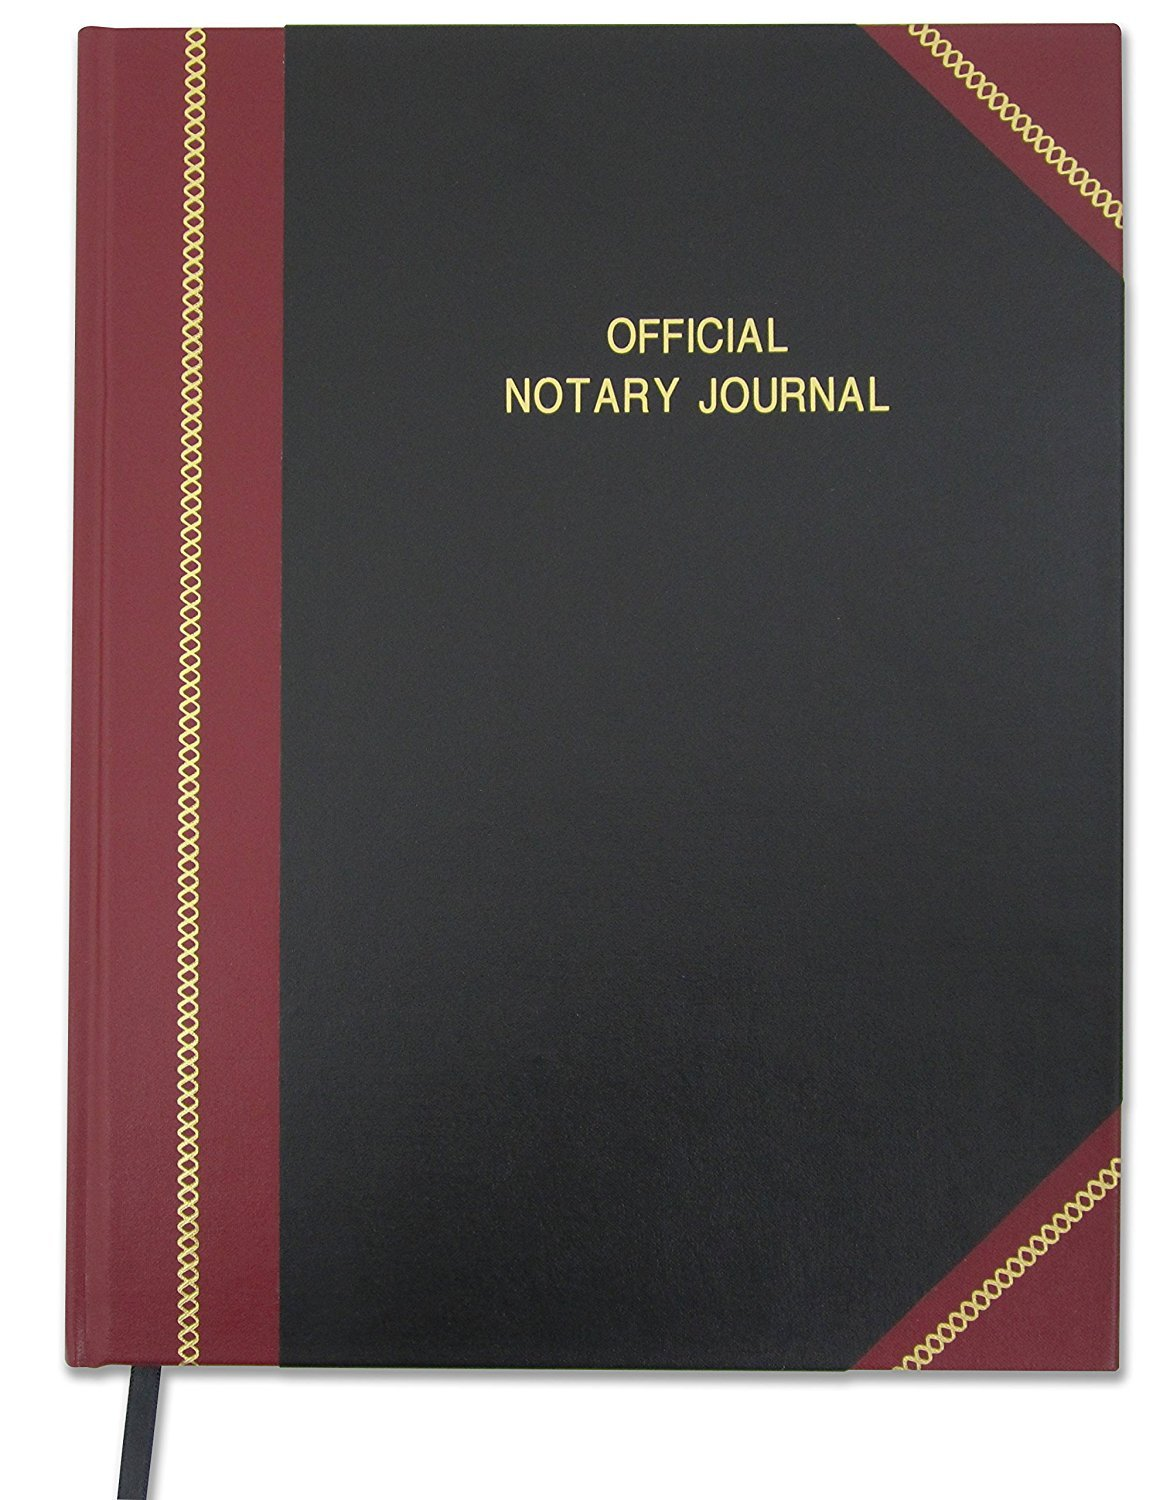 BookFactory Official Notary Journal/Log Book 336 Pages 8.5'' X 11'' 1,340 Entries All 50 States Journal of Notarial Acts, Black and Burgundy Cover, Hardbound, (LOG-336-7CS-LKMST71(Notary)) by BookFactory